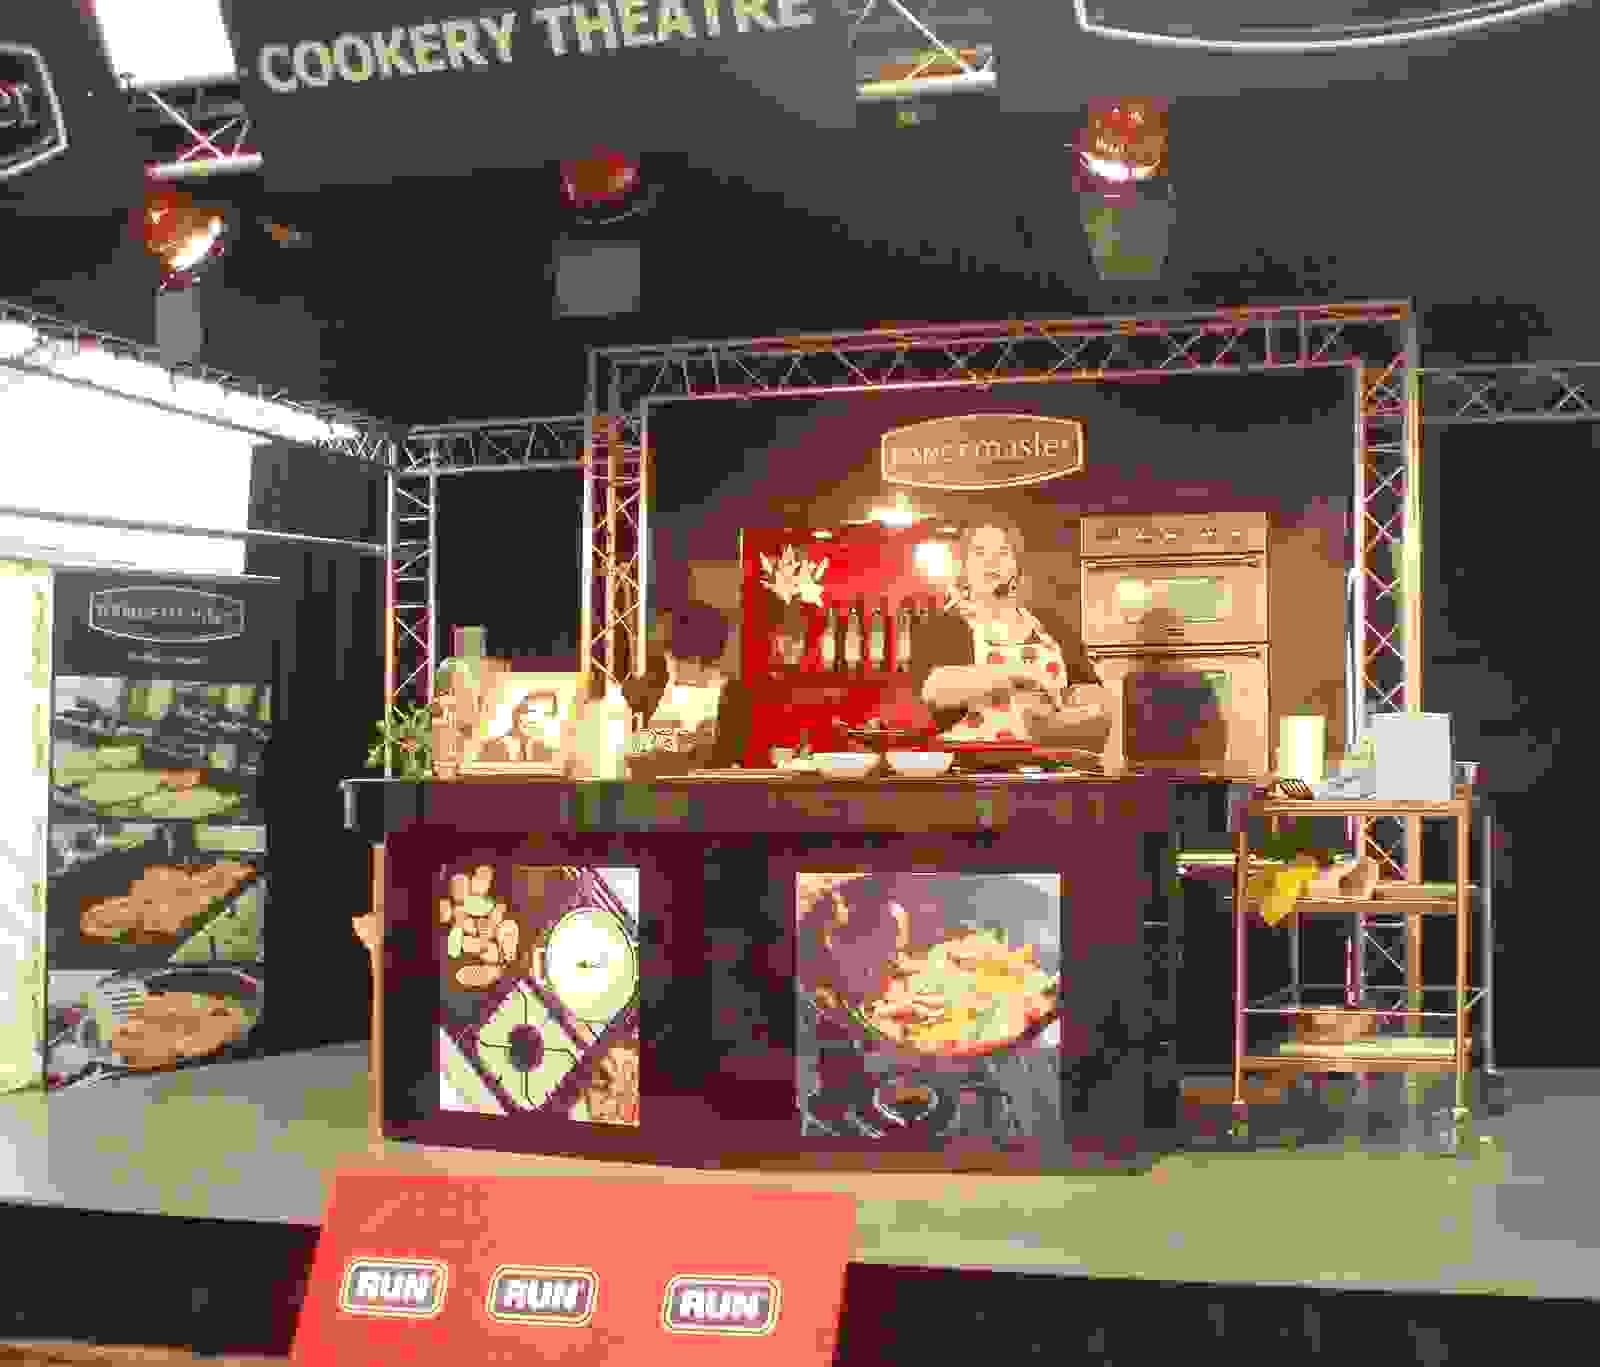 Cookery Theatre On-stage